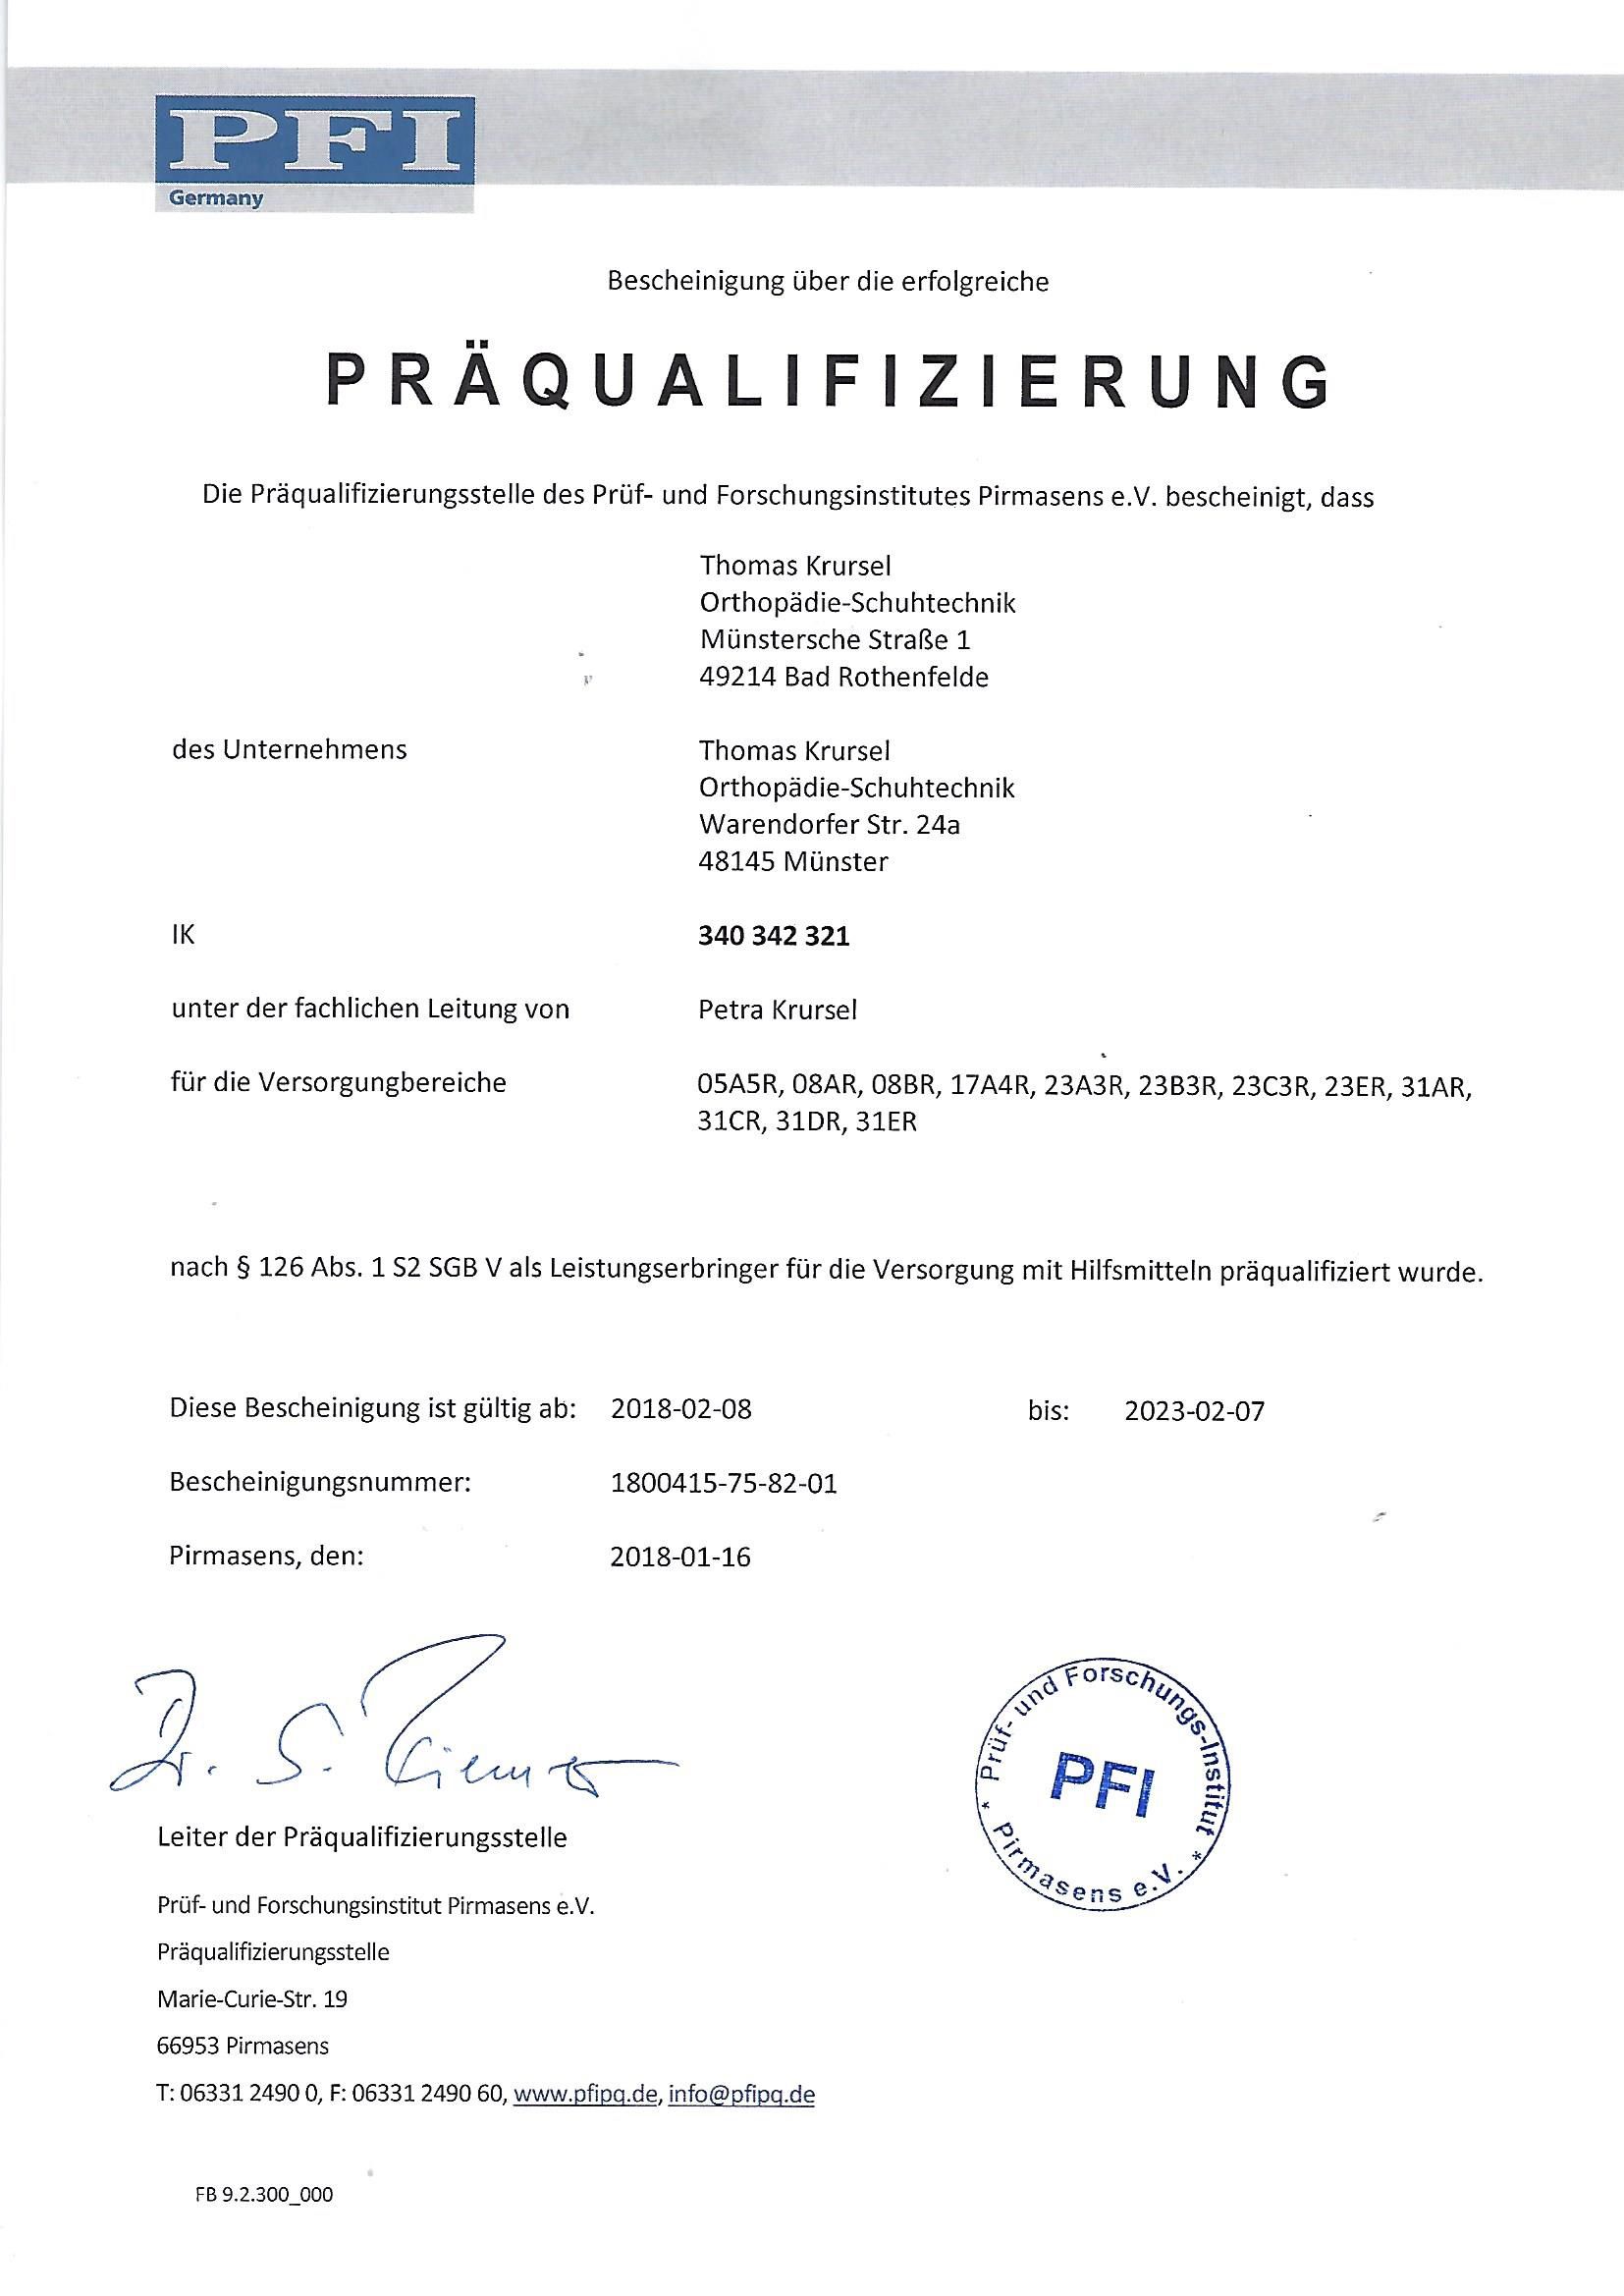 PFI Zertifikat Bad Rothenfelde 2020